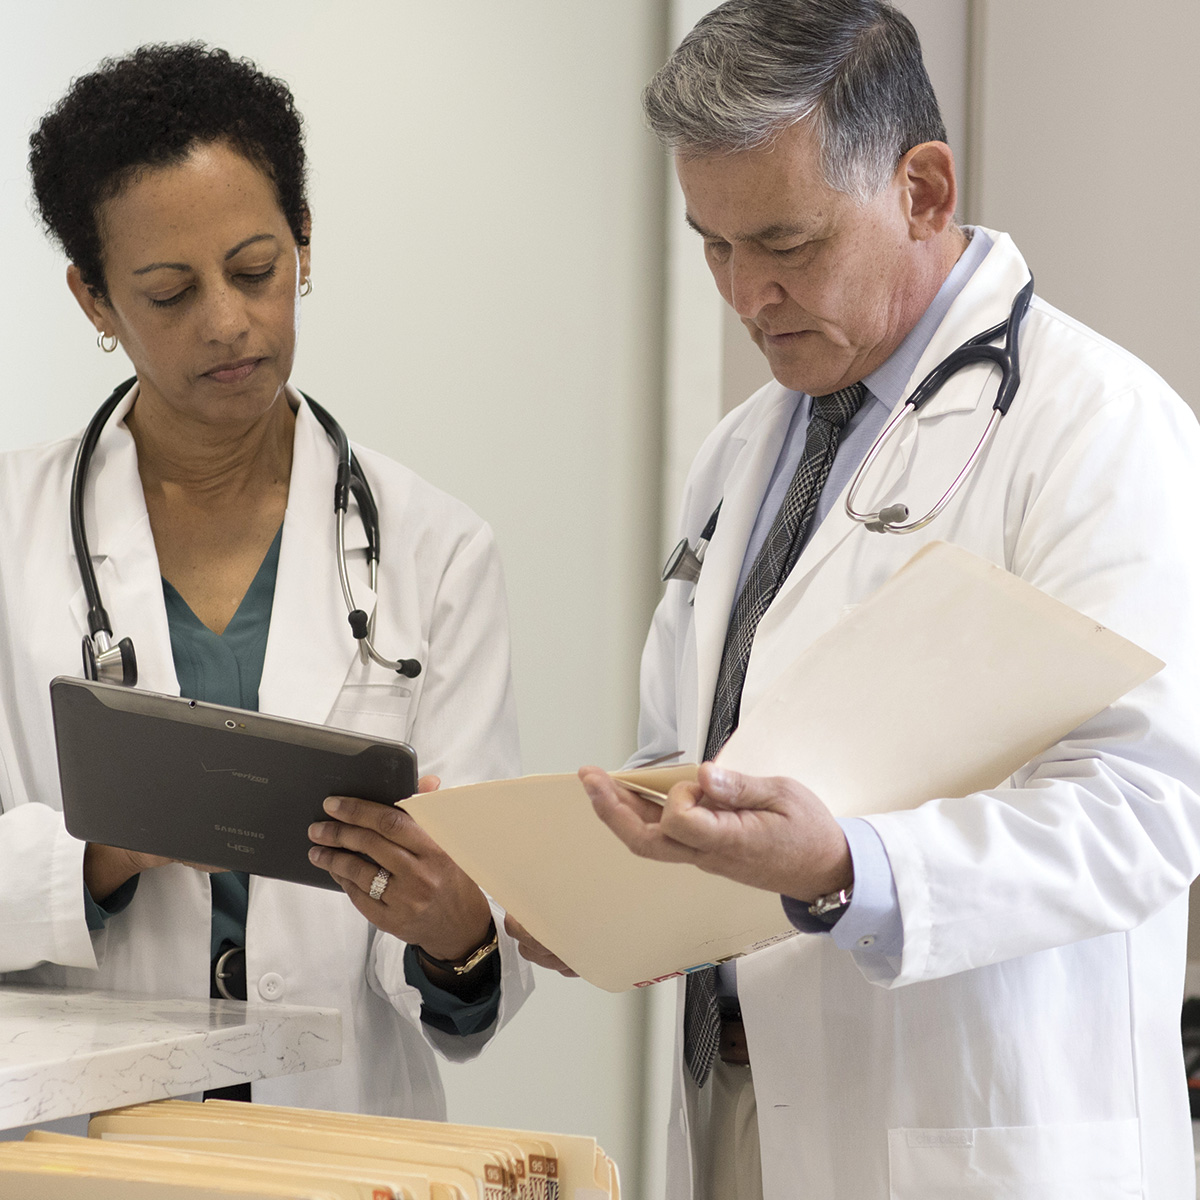 Two doctors with focused expressions look at a tablet.